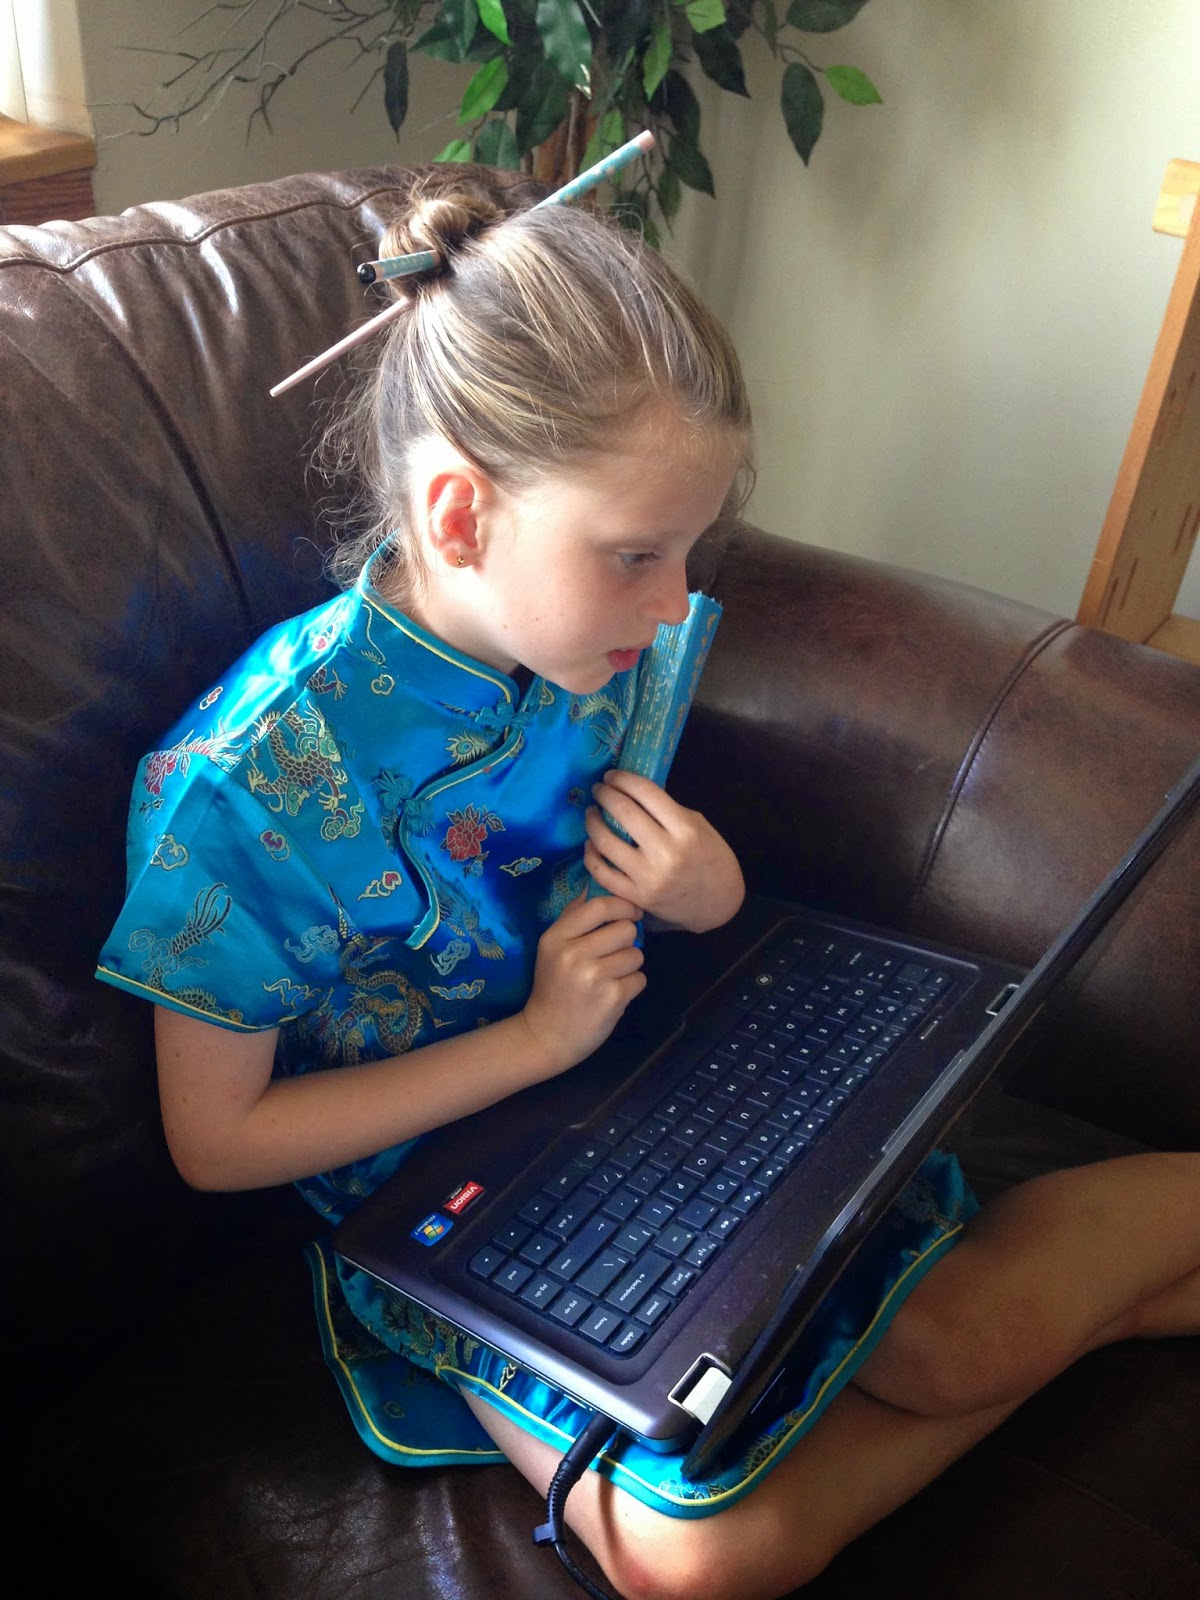 Reasons we chose homeschooling | Hi! It's Jilly #homeschool #ldshomeschool